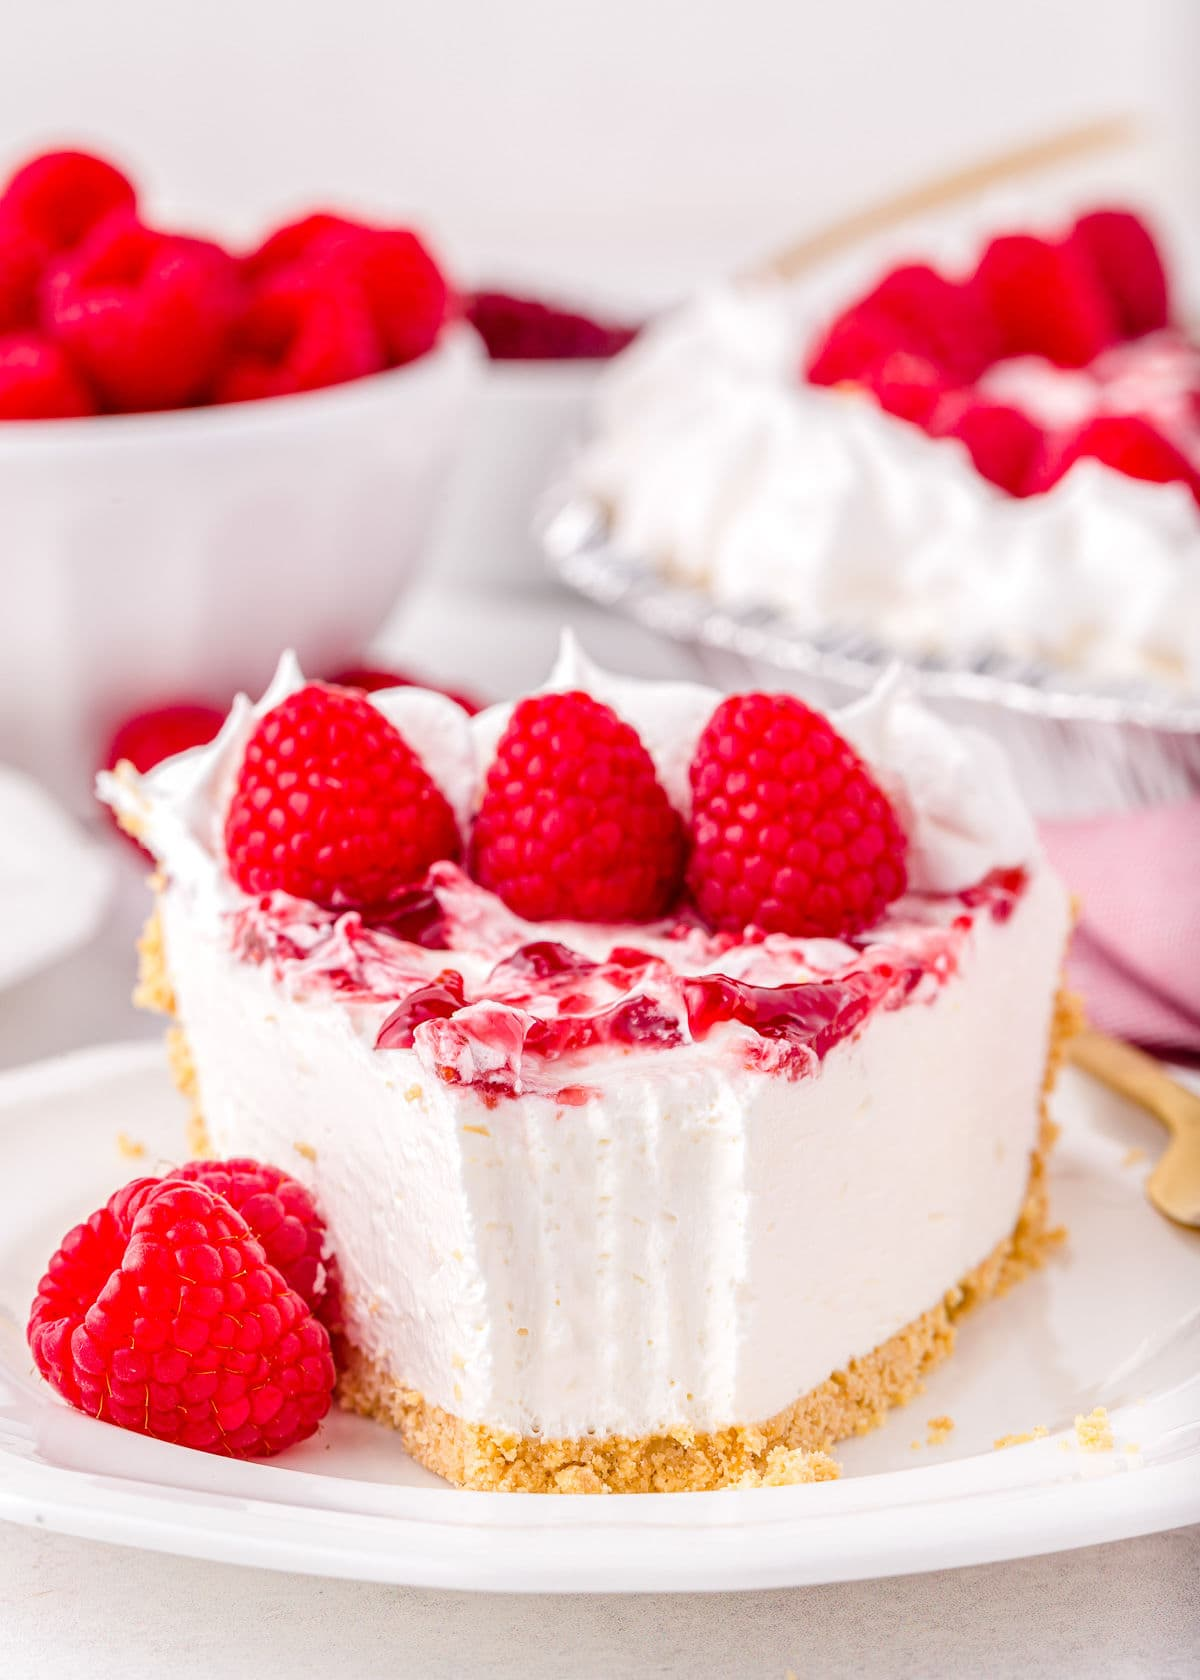 piece of raspberry no bake cheesecake with bite taken sitting on white plate and garnished with fresh raspberries.